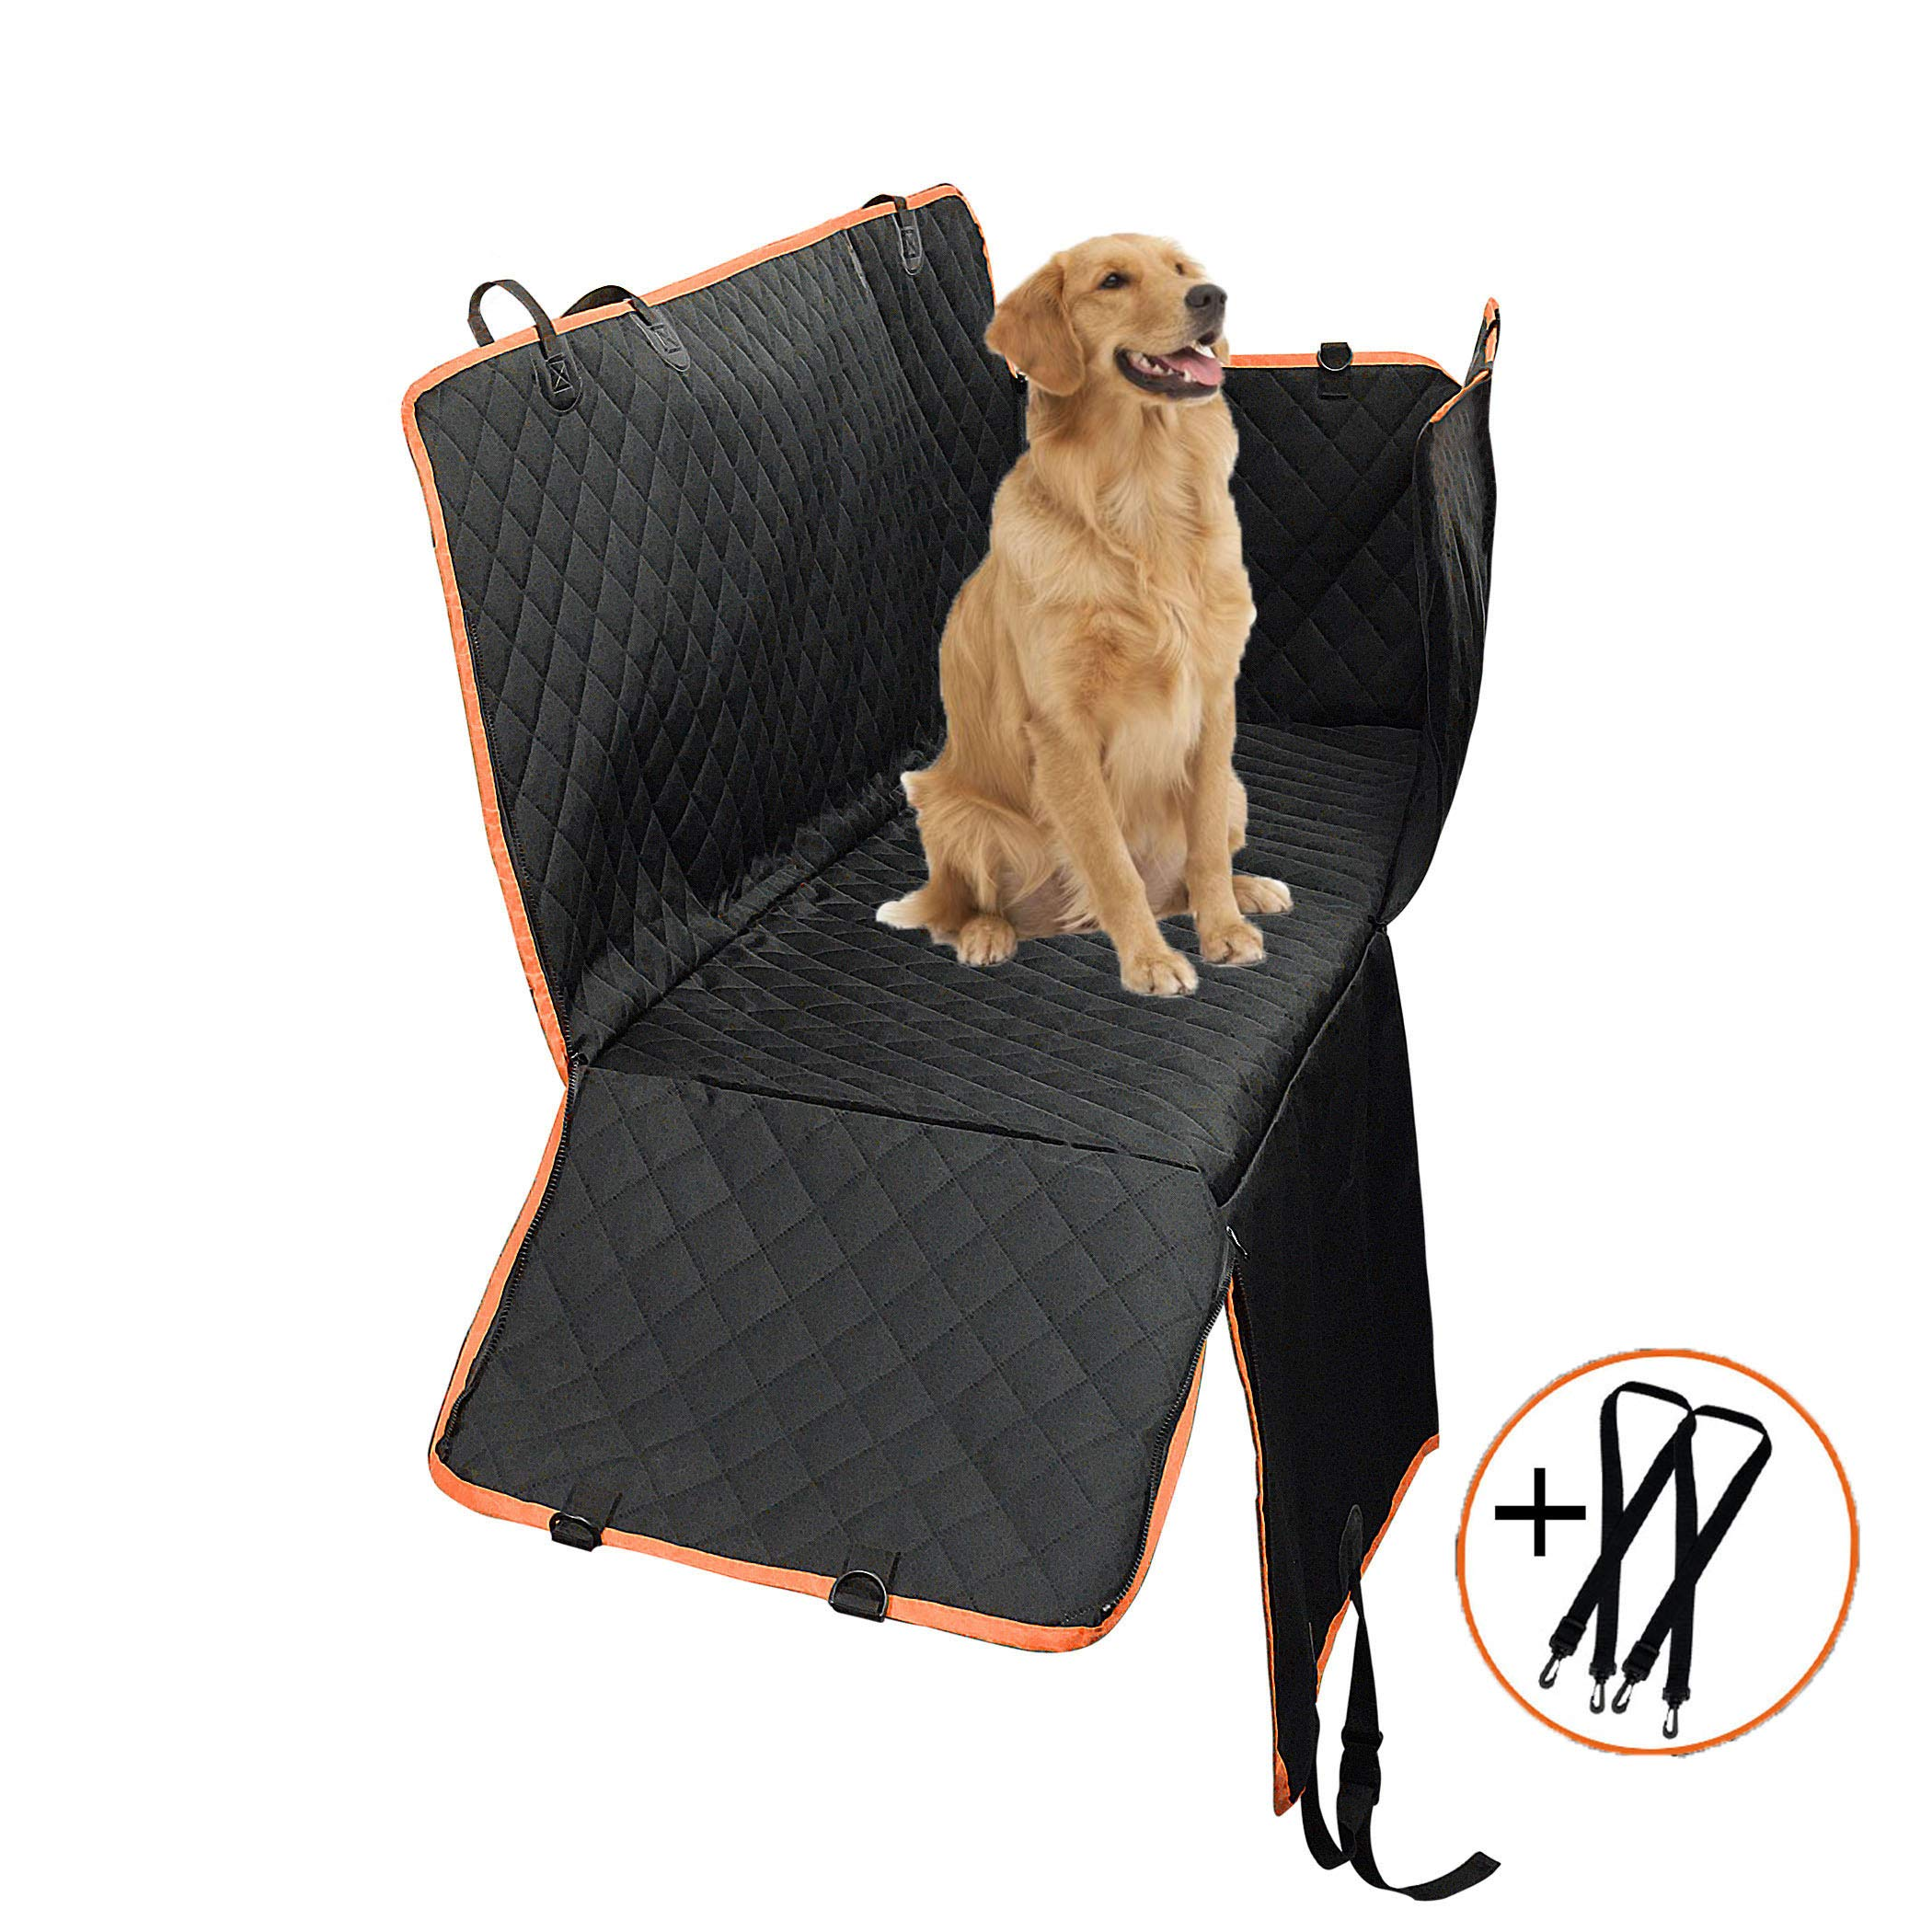 Paercute New Upgrade Dog Car Seat Cover 100% Waterproof Car Seat Dogs Side Flaps Hammock Scratch Proof & Nonslip Dog Seat Covers Back Seat Washable Dog Seat Cover Cars Trucks SUV